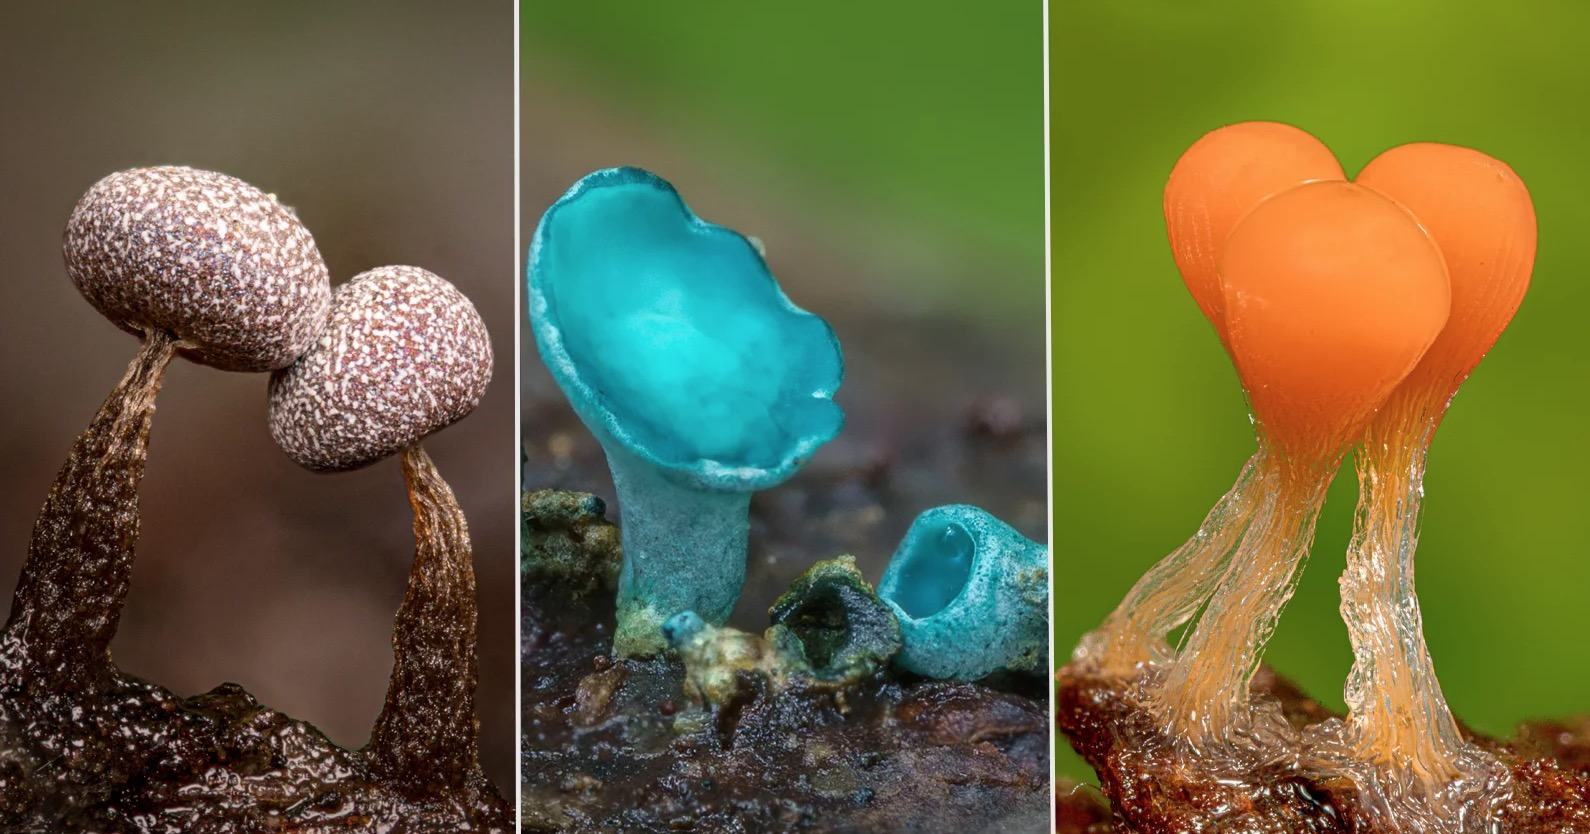 Stunning Super Macro Photos Of Minuscule Mushrooms And Fungi